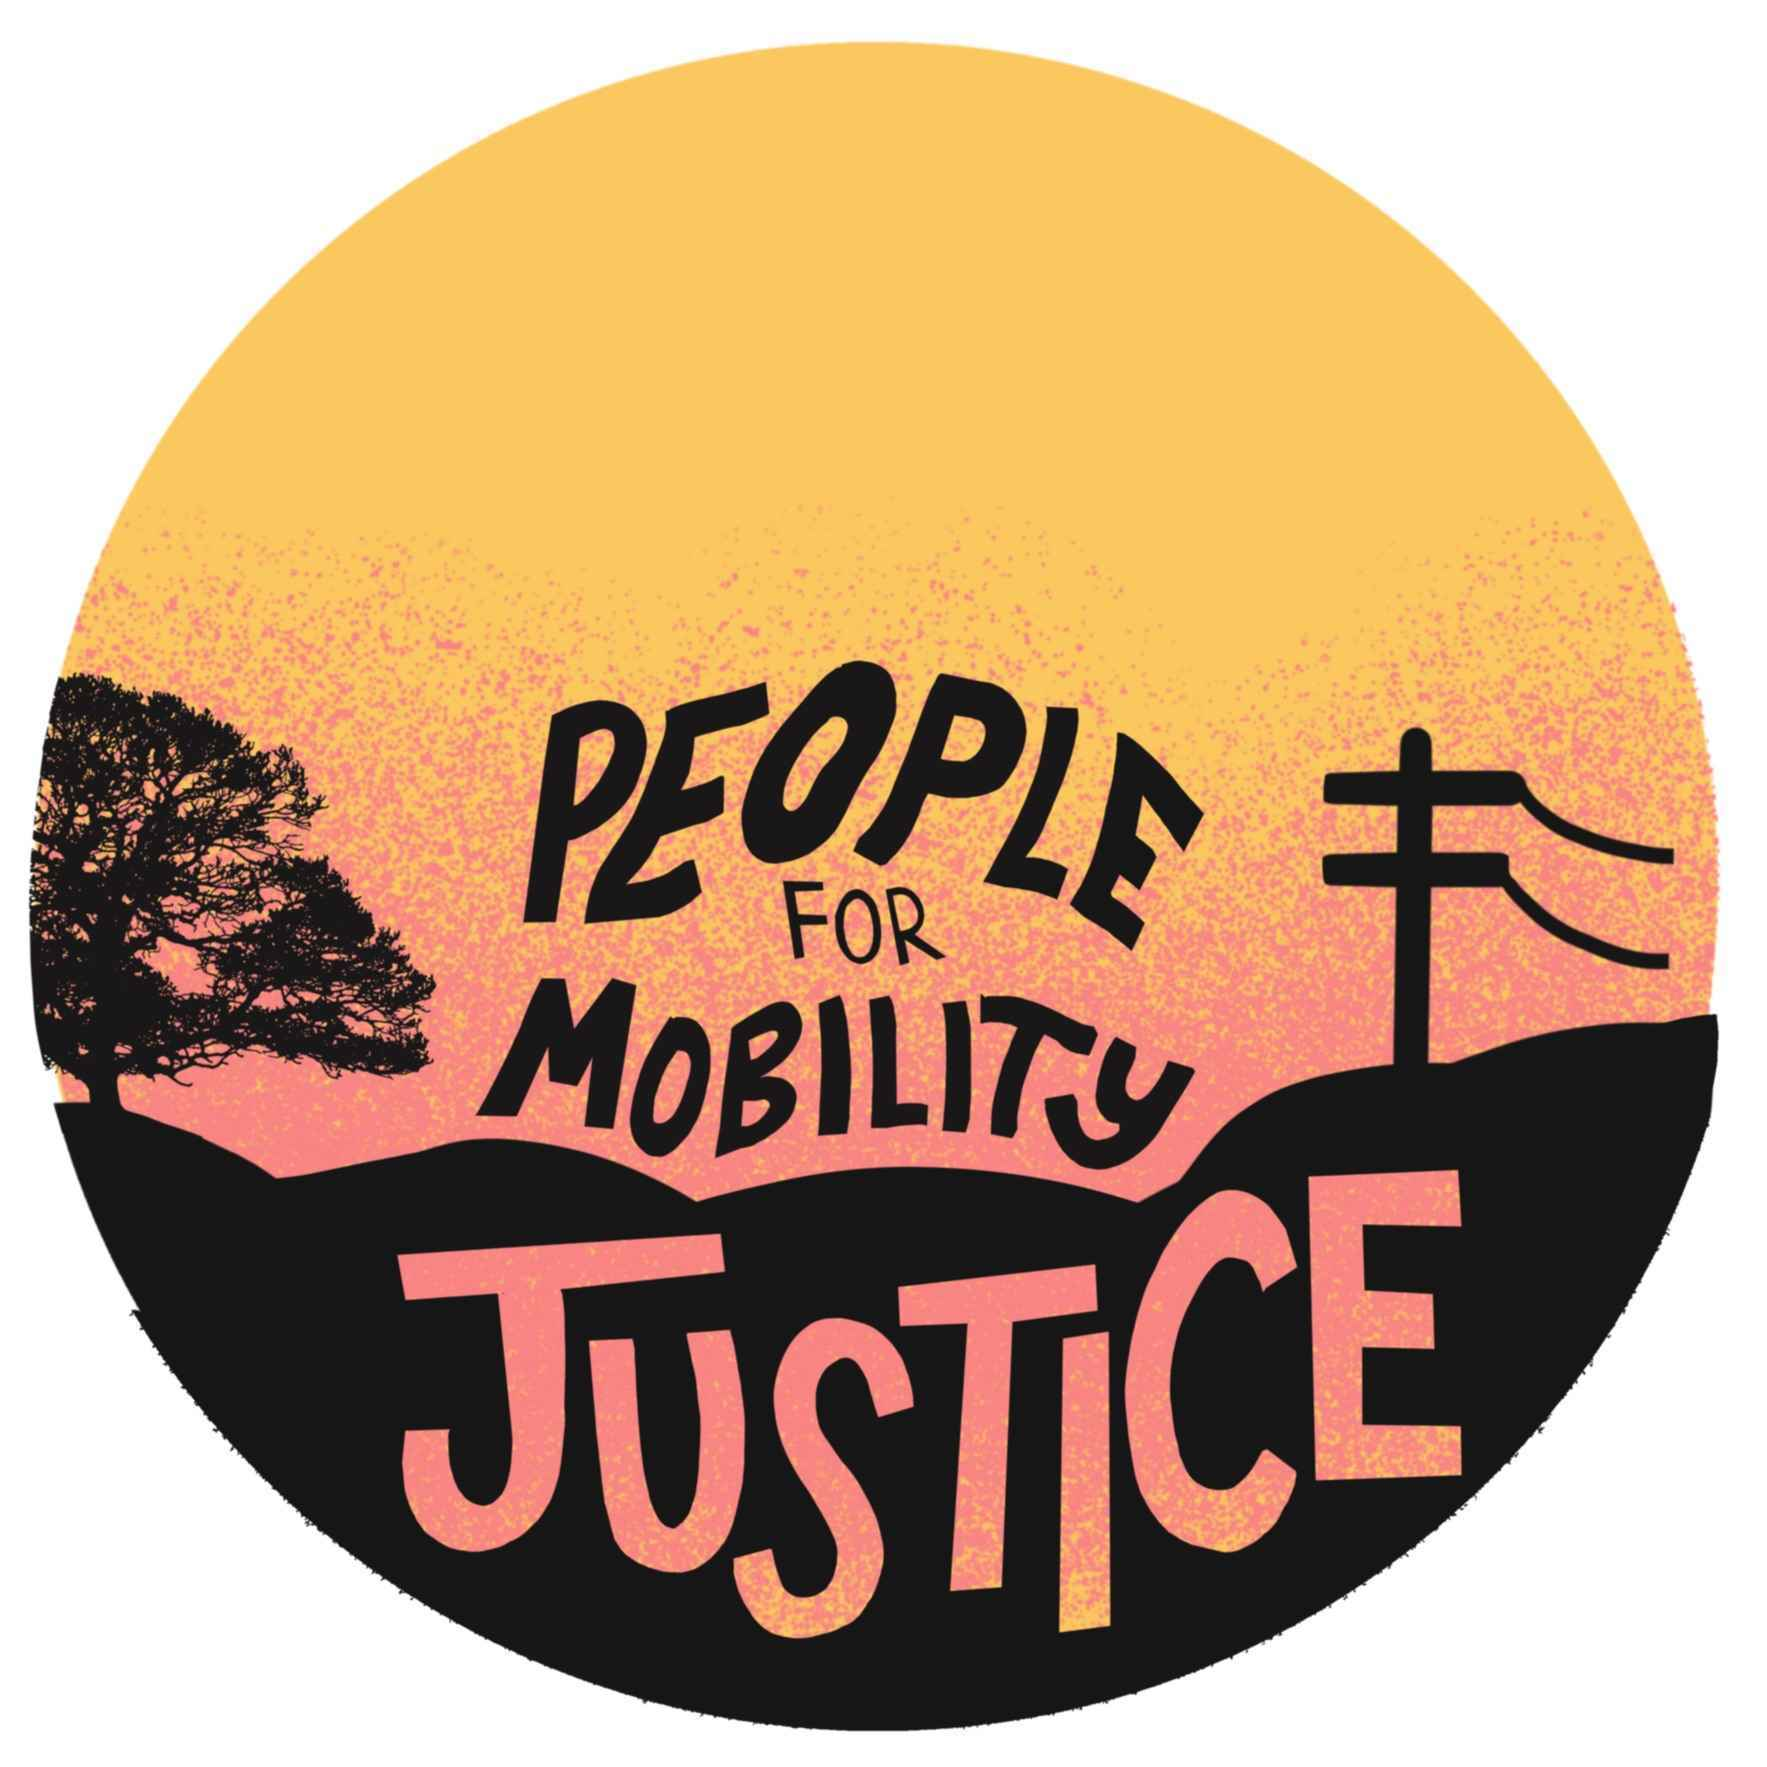 Donate to People for Mobility Justice image